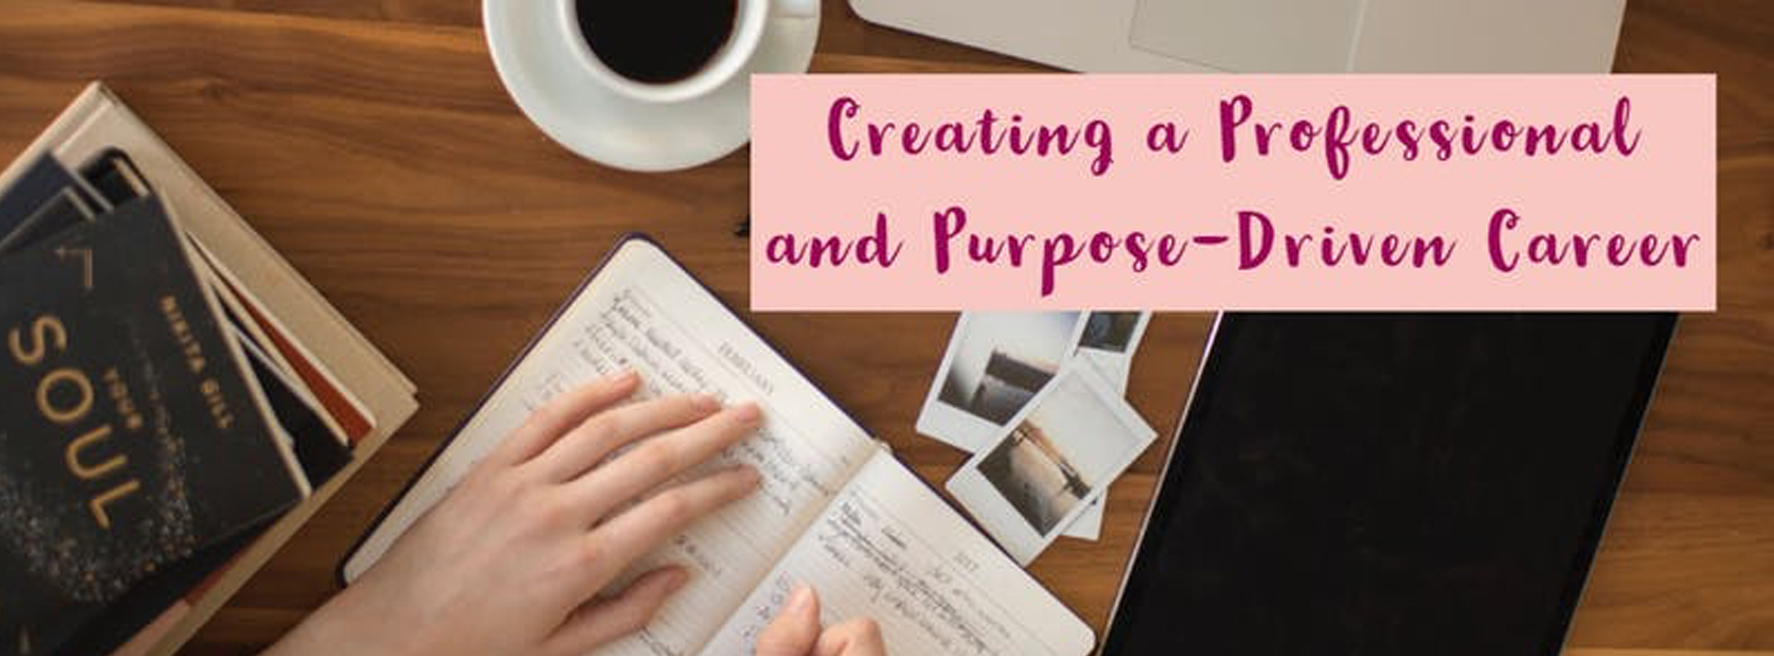 Creating a Professional and Purpose-Driven Career